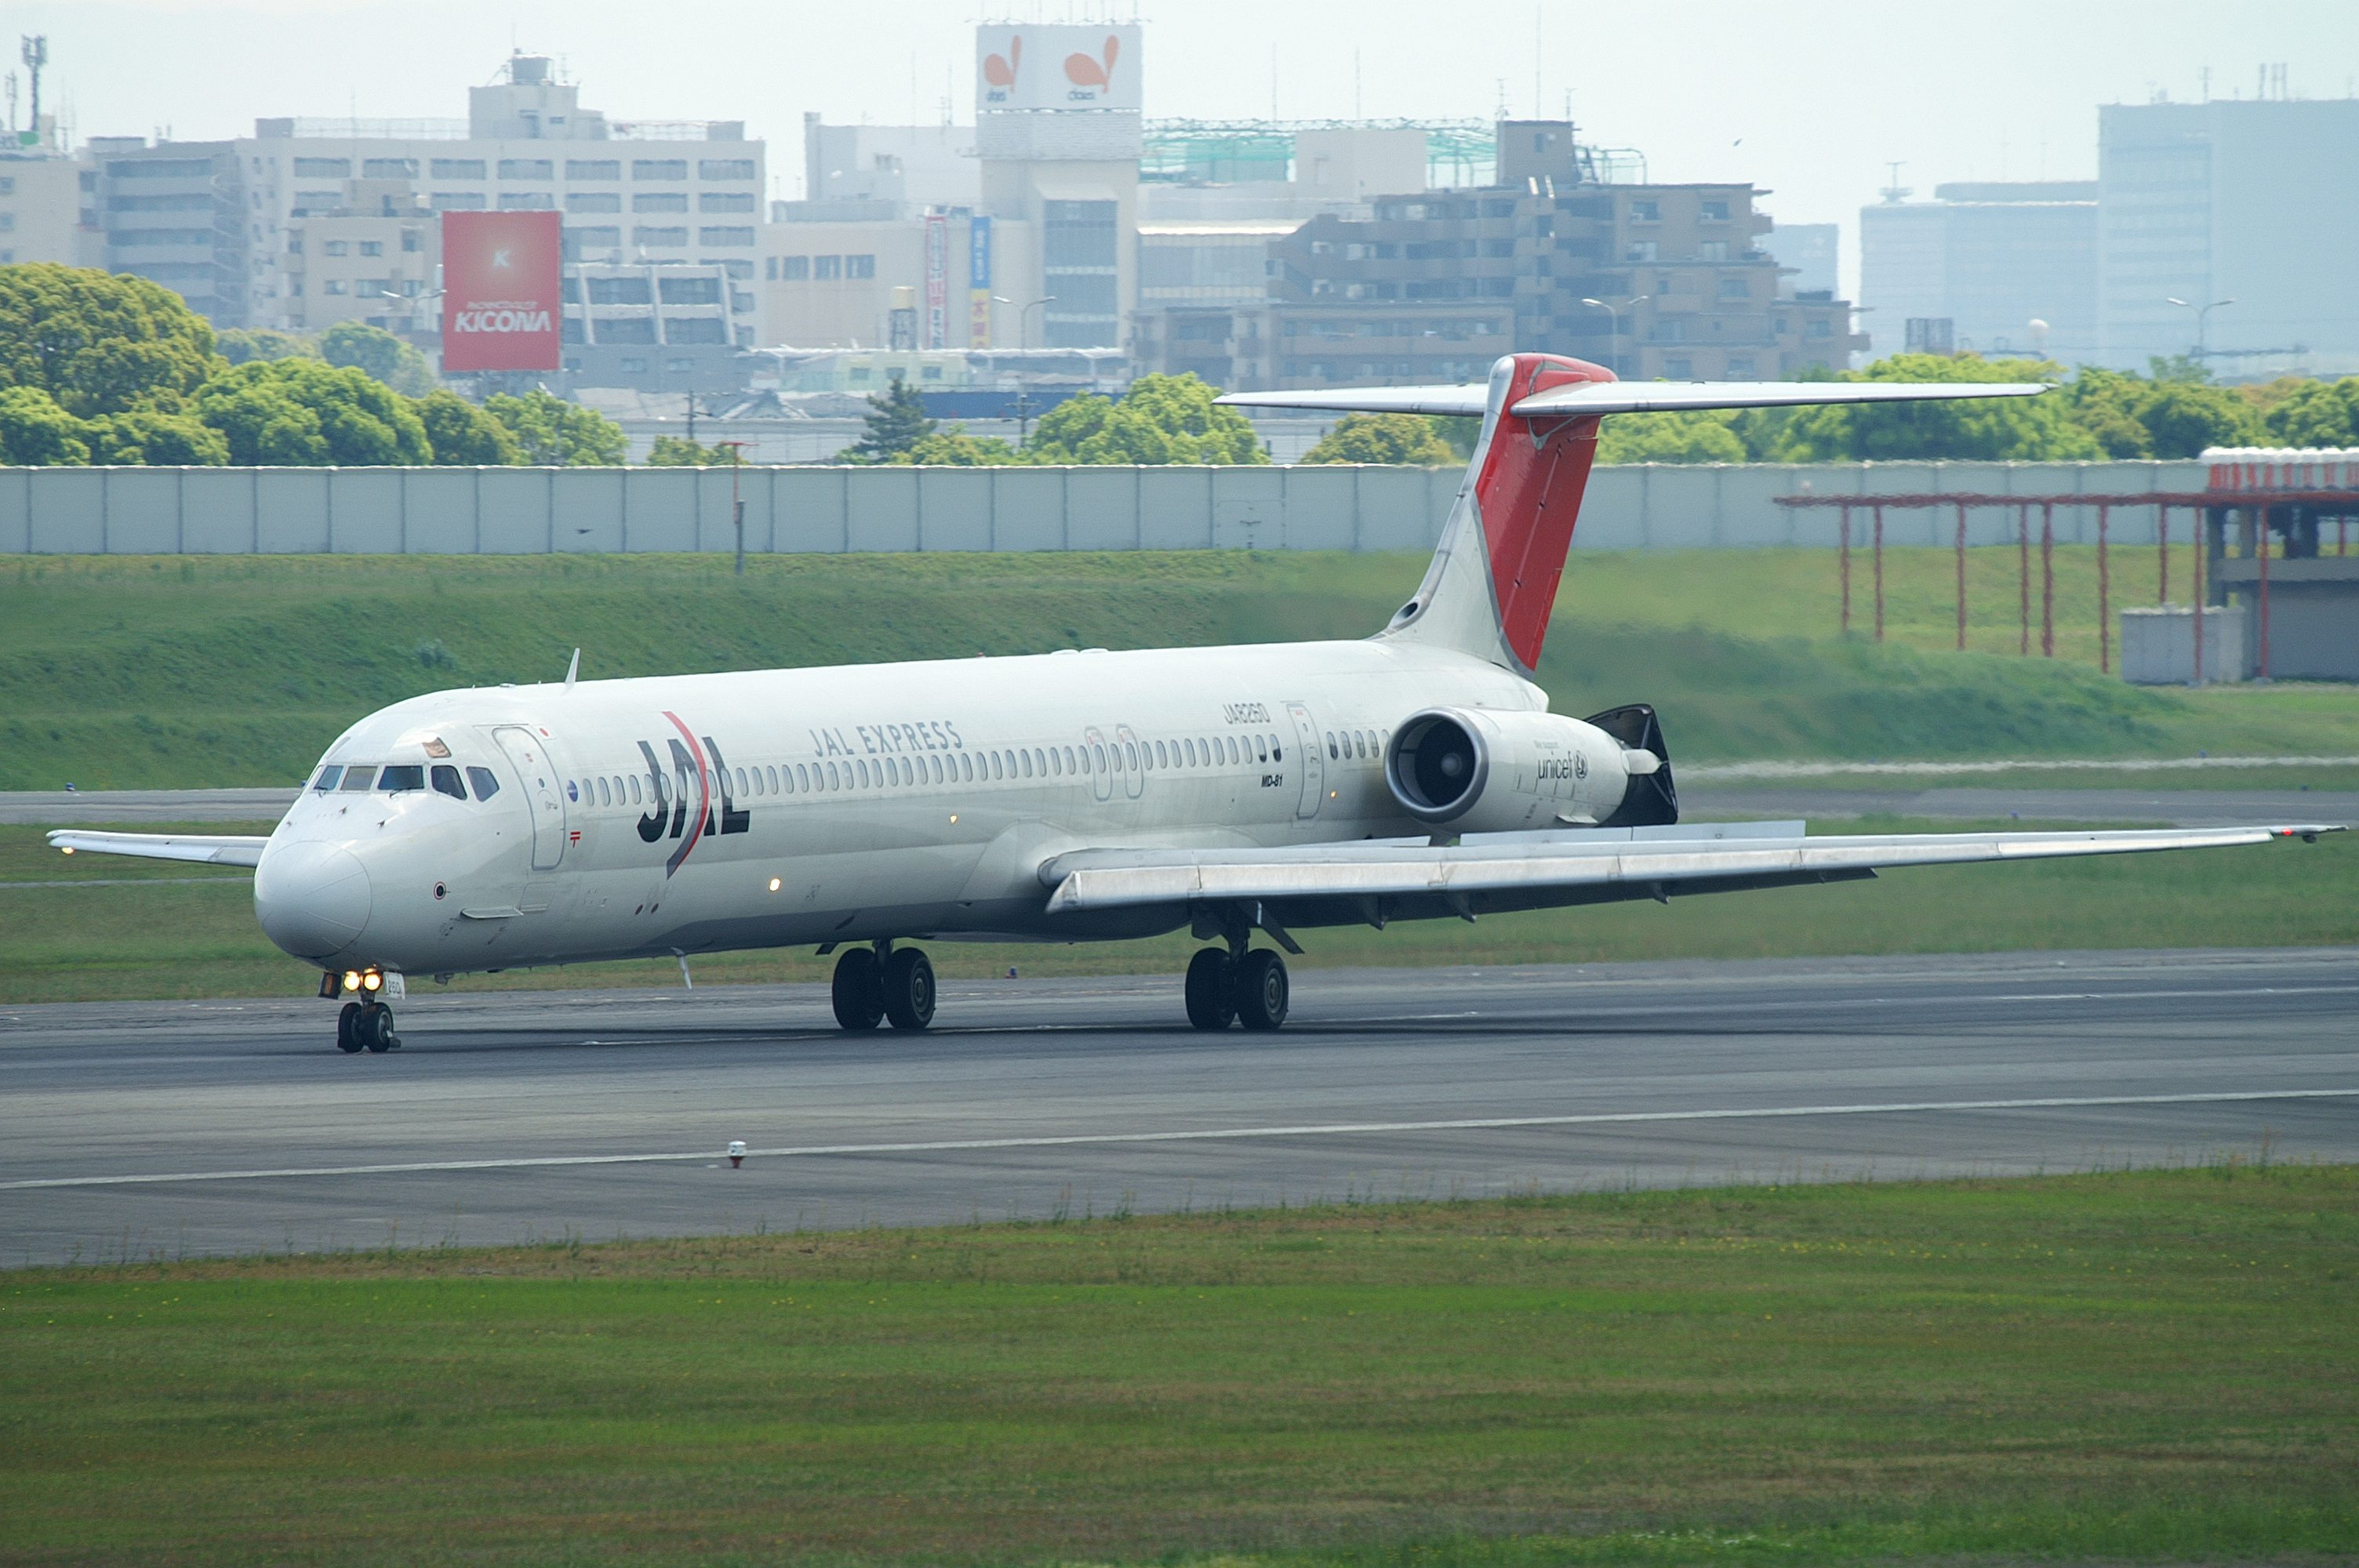 81 Aircraft Contact Us Email Cv Jobs Gov 419 Scams Mail: Incident McDonnell Douglas MD-81 JA8260, 22 Apr 2009